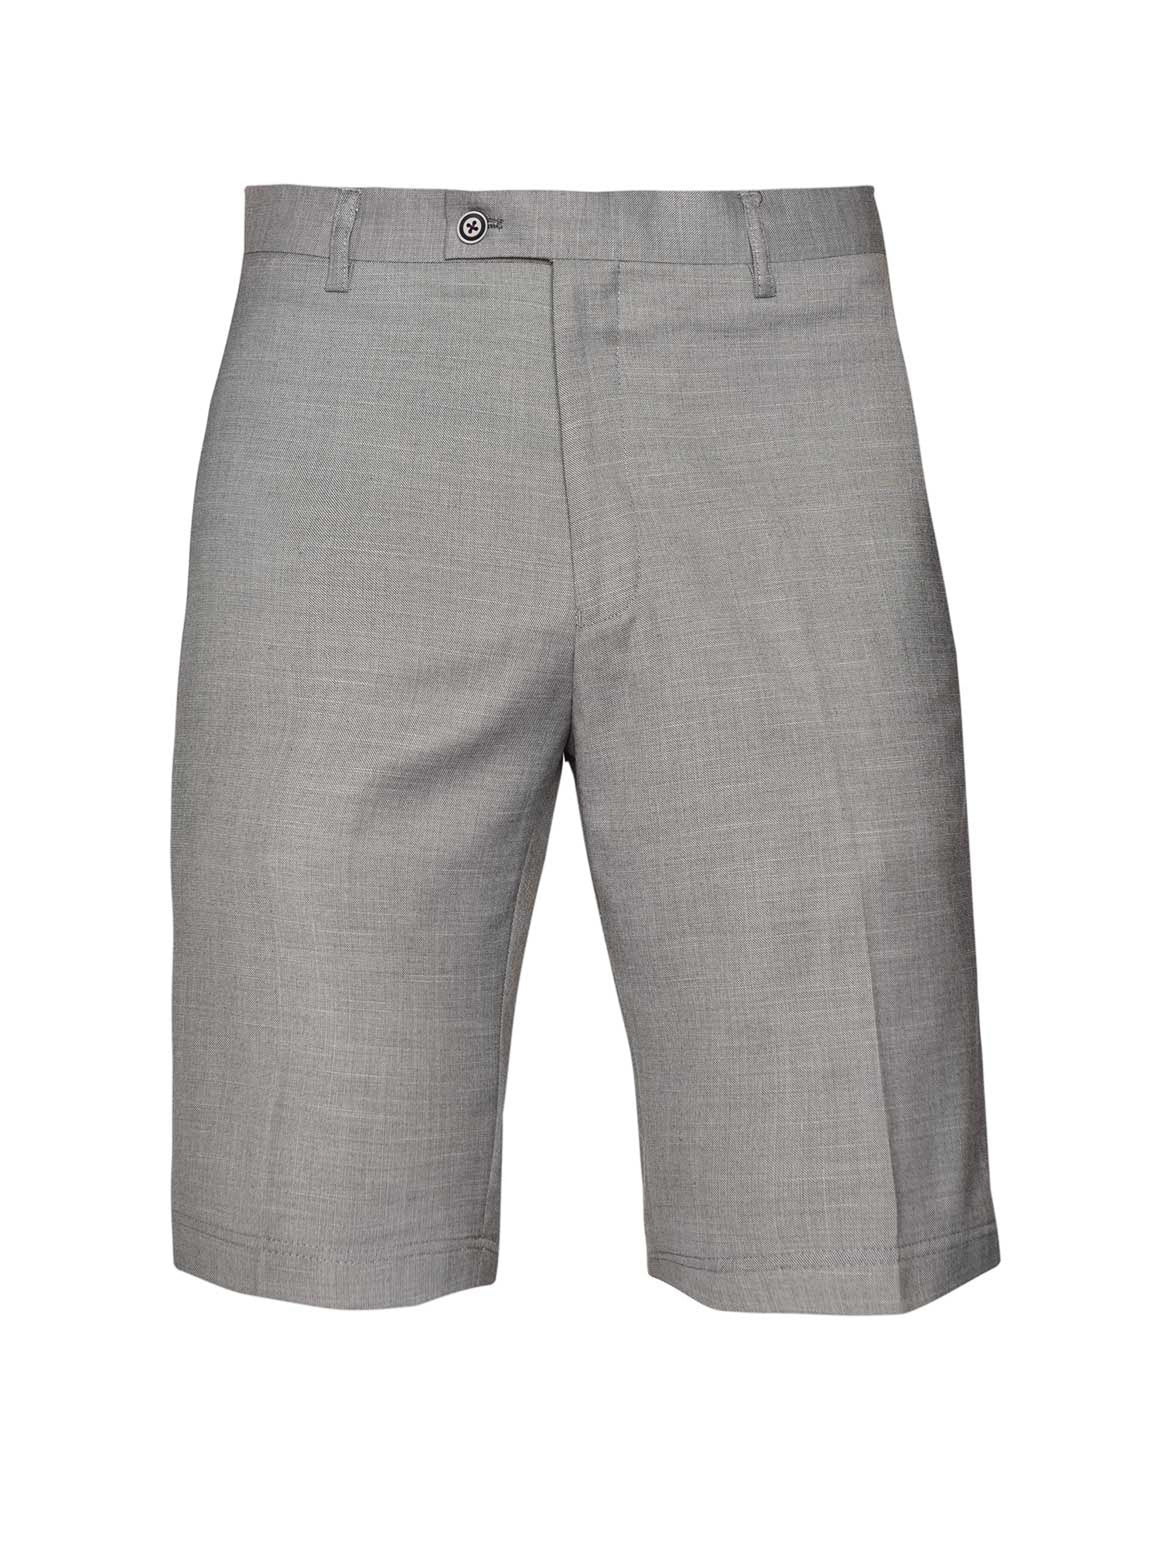 Fairview Shorts  - Light Grey